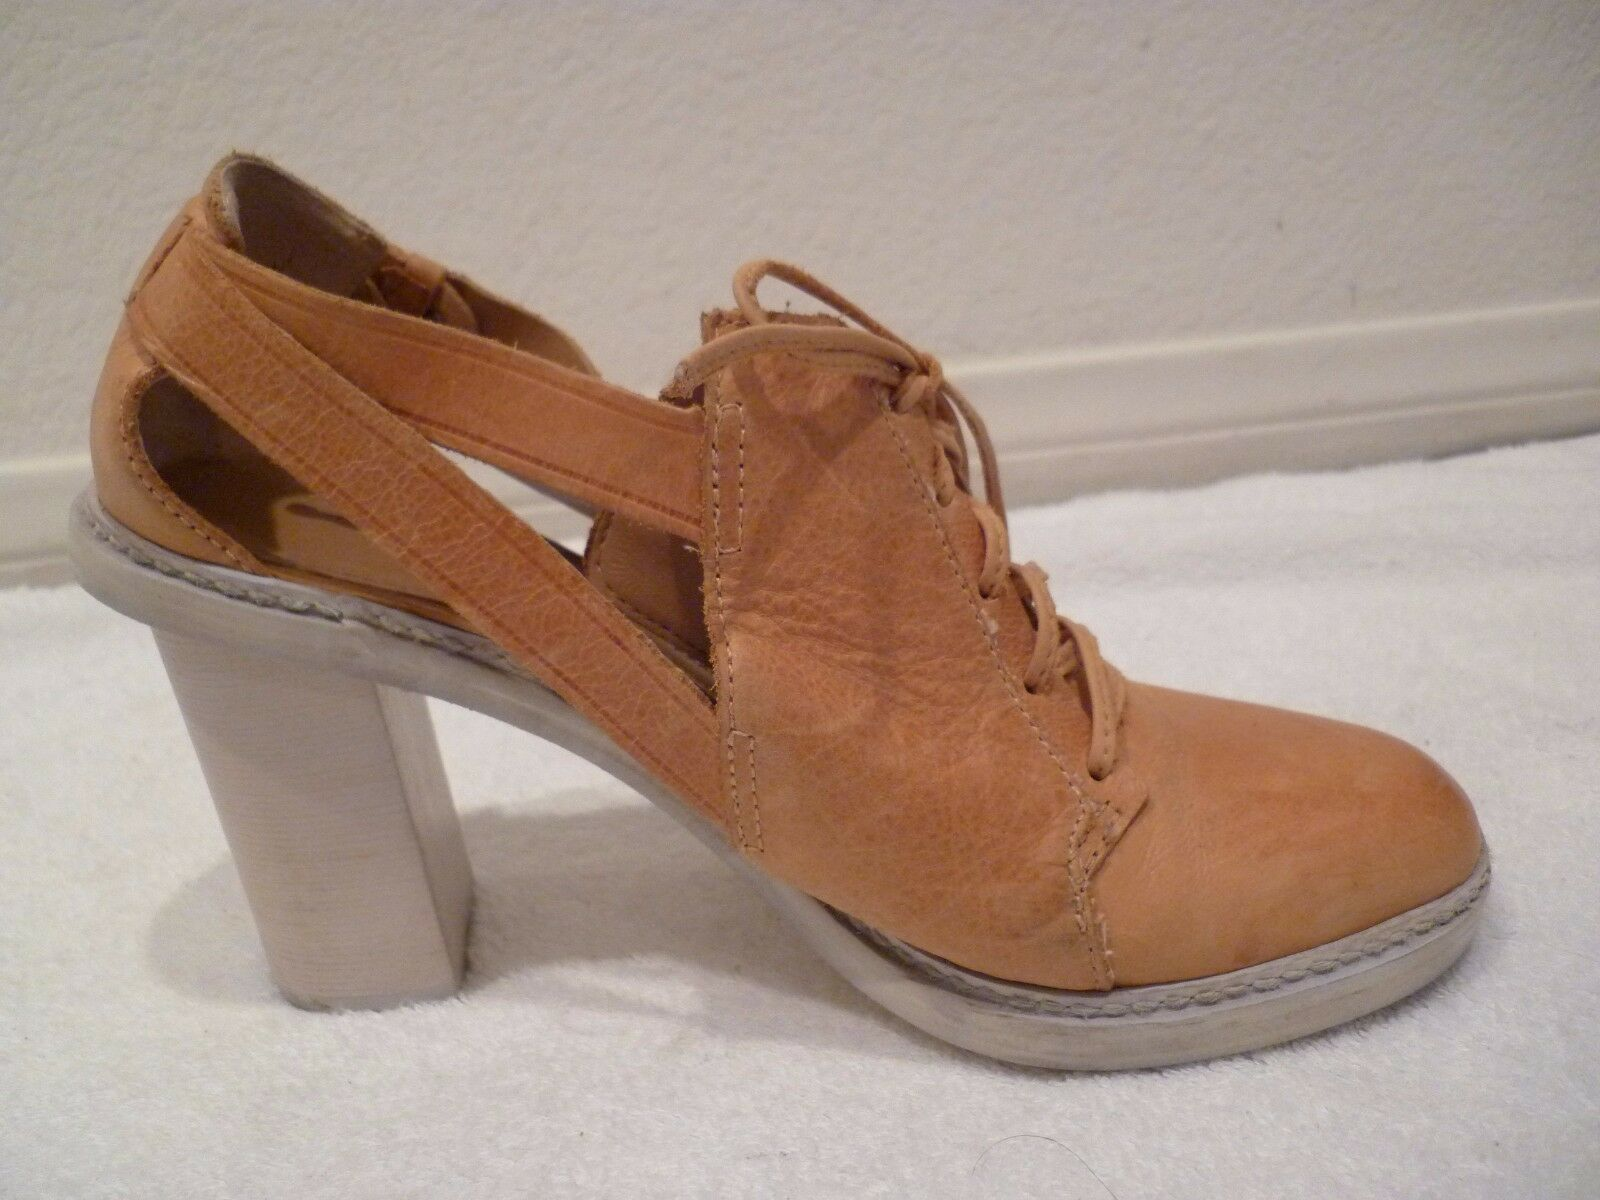 goditi il 50% di sconto Schuler & Sons Anthropologie Lace Up Heel Leather Leather Leather Sandals scarpe camel Marrone SZ 8  outlet